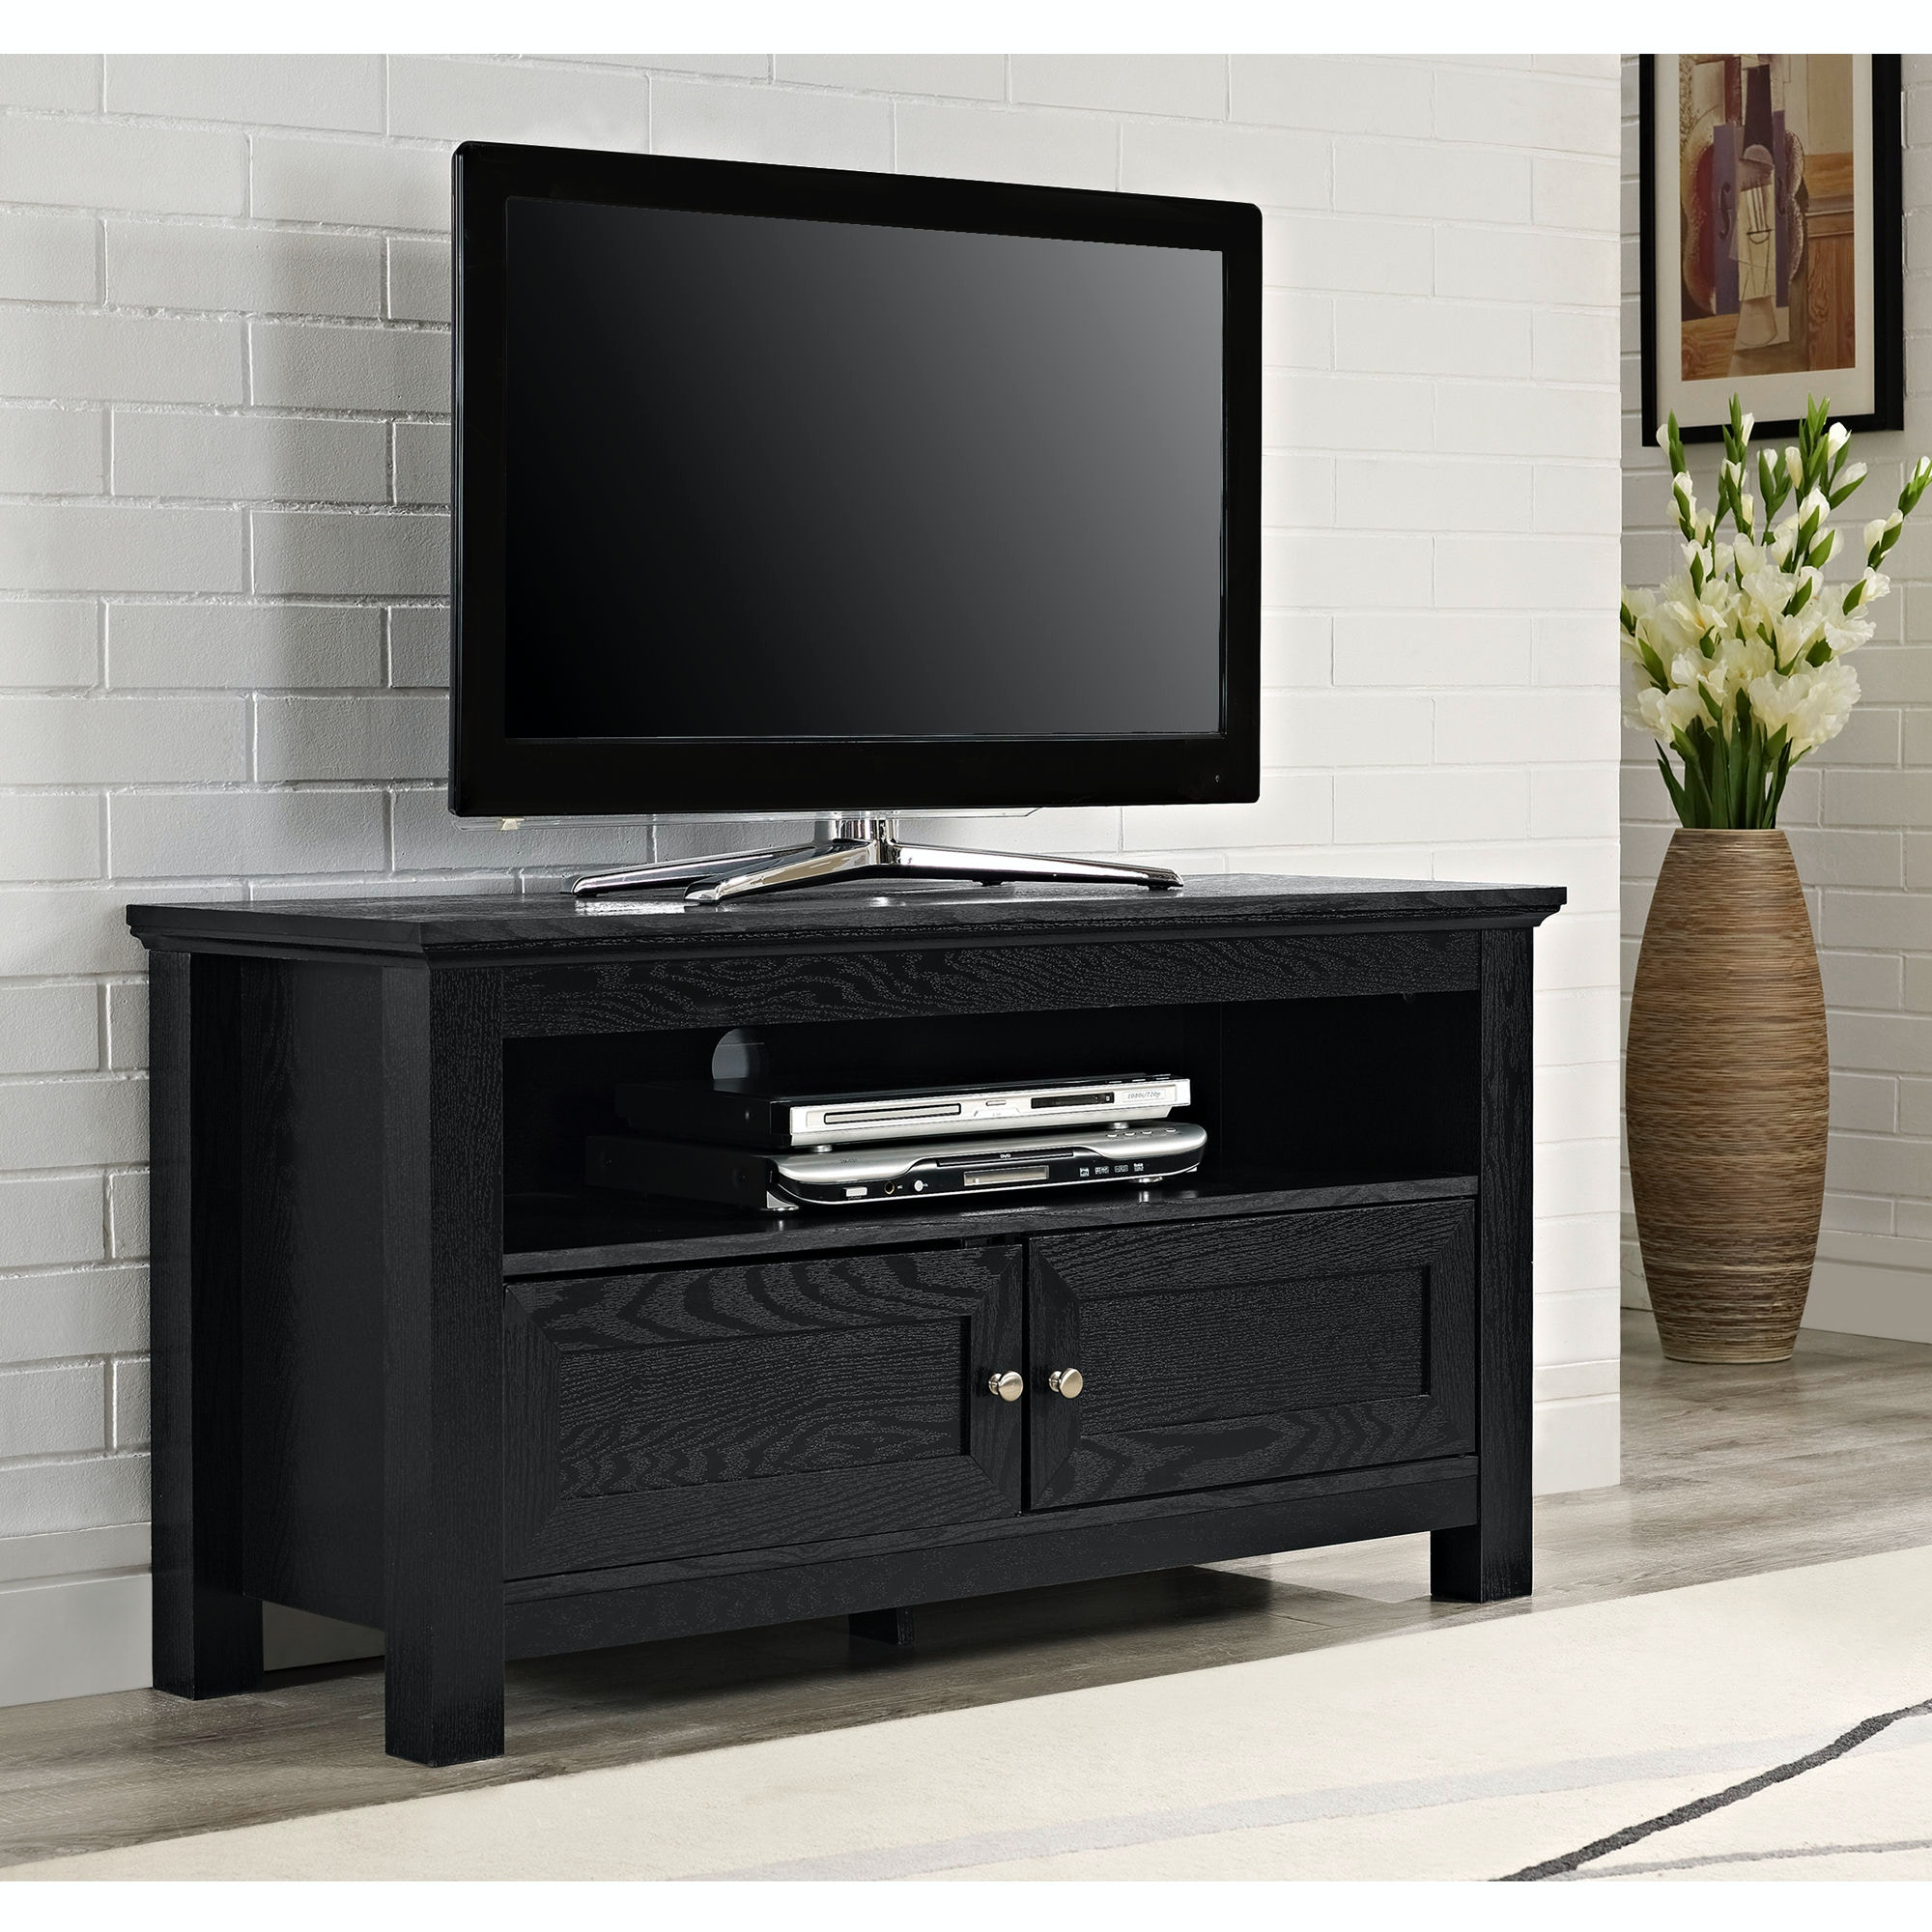 Ft Myers 44u0027u0027 Wood TV Stand Console WEDW44CSBL